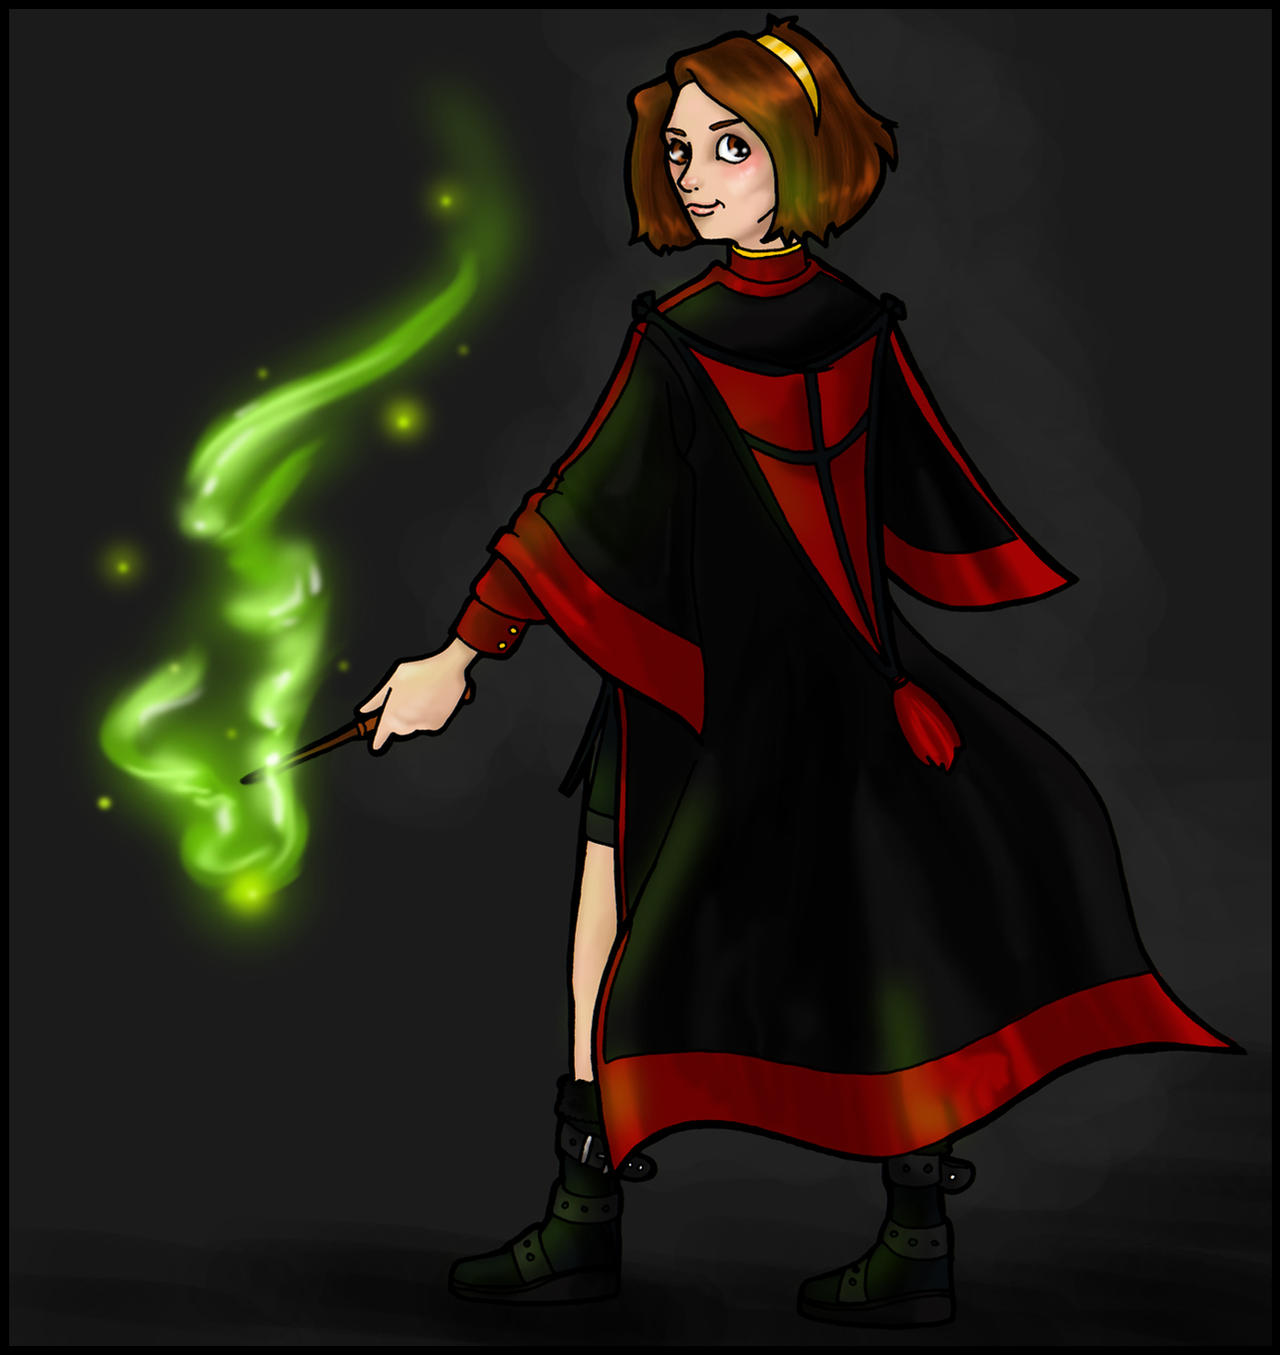 Harry Potter Durmstrang By Mausergirl On Deviantart Durmstrang institute was founded by nerida vulchanova of bulgaria, a powerful witch, but whose death was mysterious. harry potter durmstrang by mausergirl